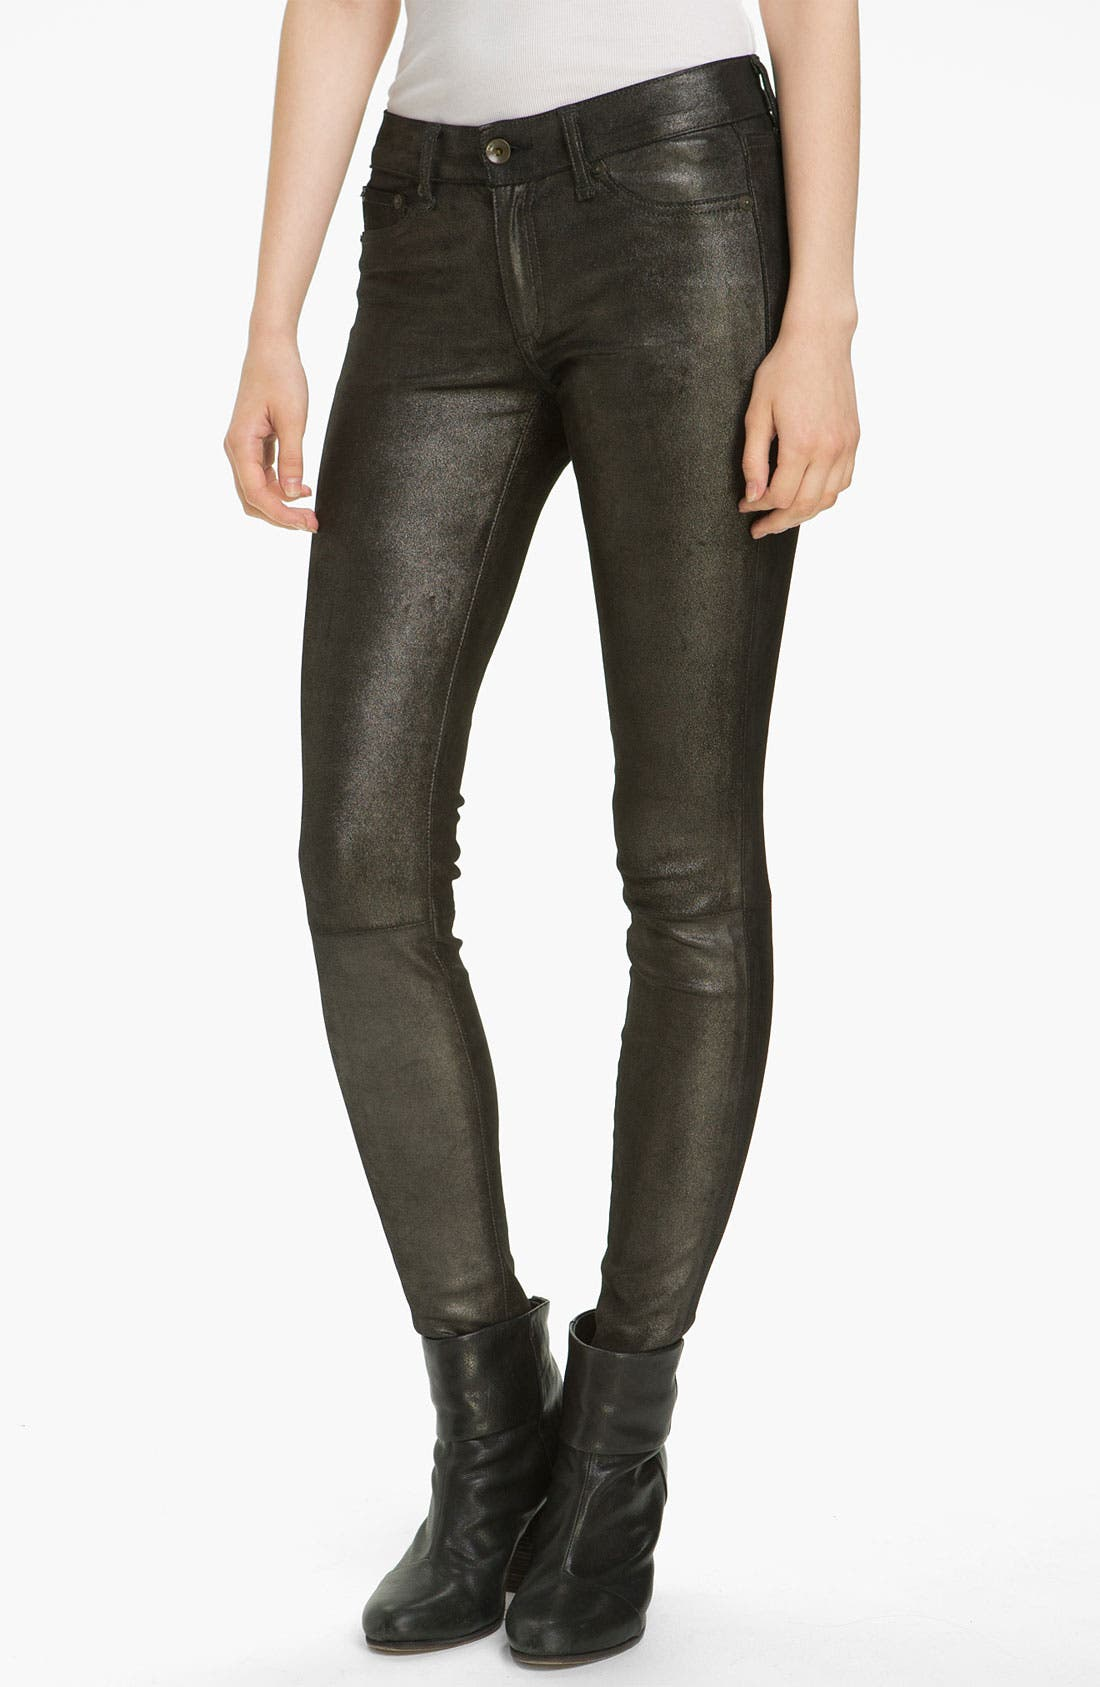 Alternate Image 1 Selected - rag & bone/JEAN Stretch Leather Leggings